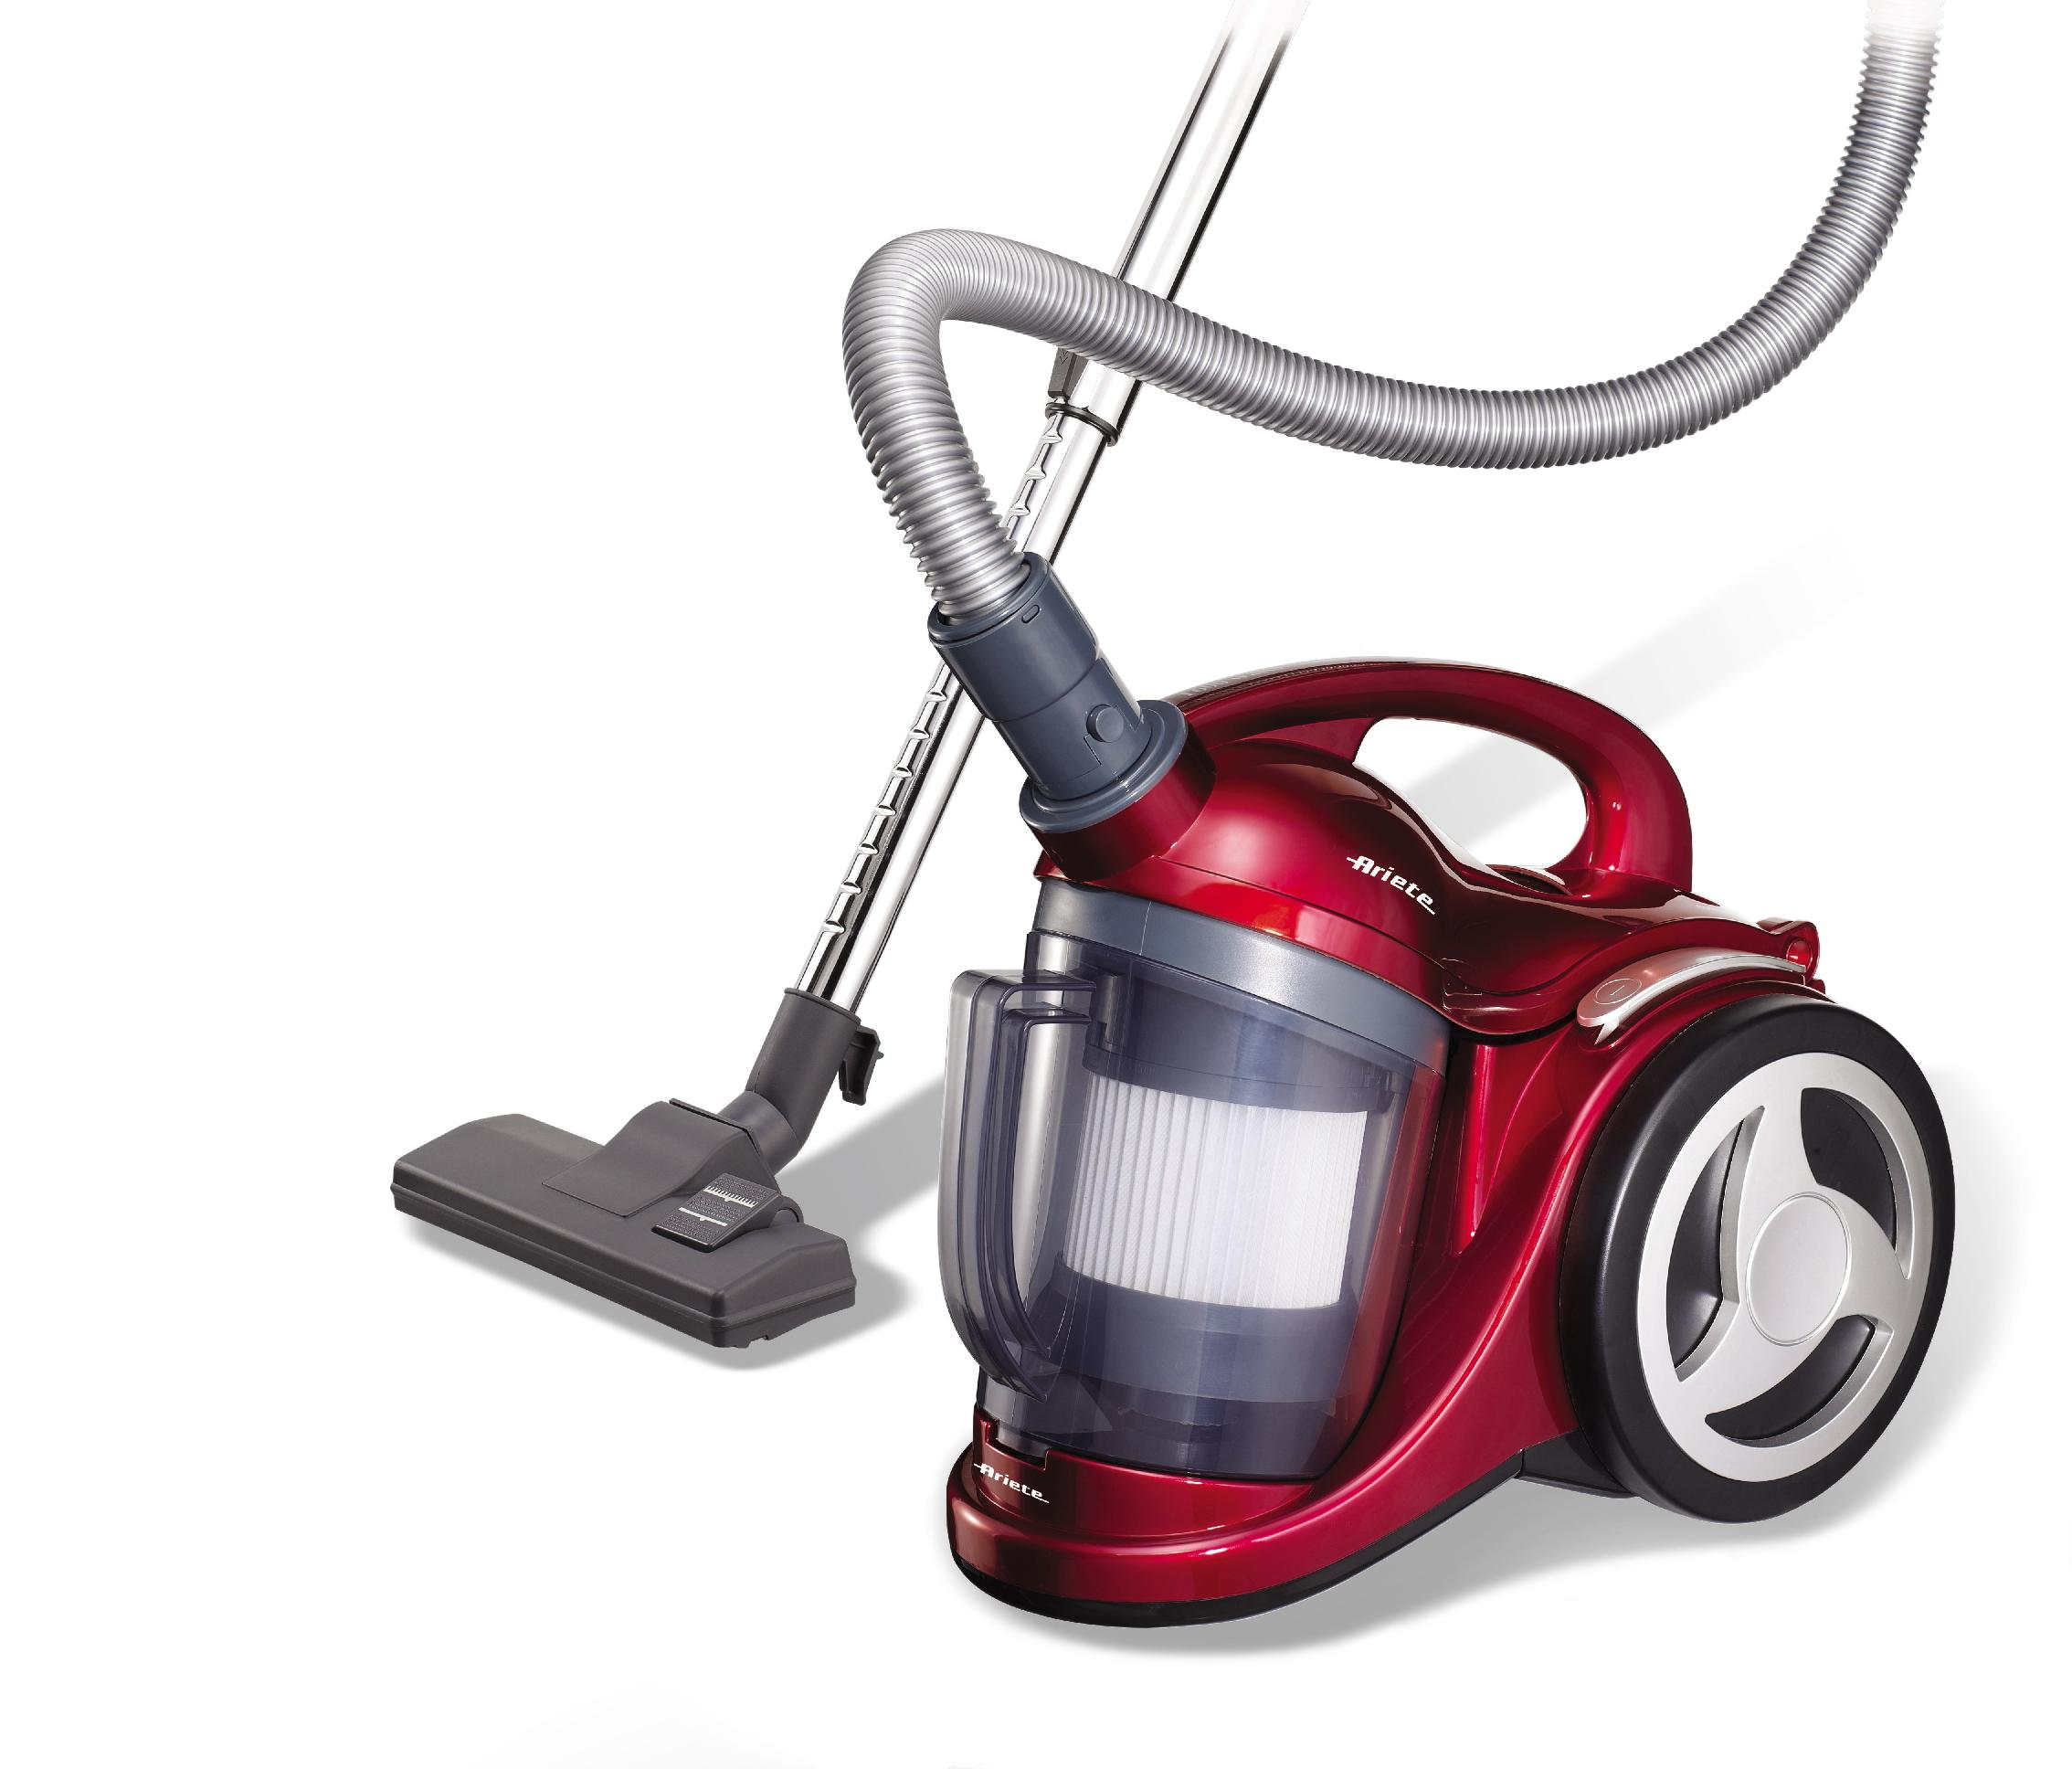 New Kirby Vacuum Cleaners in addition Cat Vacuum Cleaner Cover furthermore Dyson Animal Ball Vacuum Cleaner in addition Eureka Upright Pet Vacuum Cleaner also Shopping Channel. on dyson upright vacuum